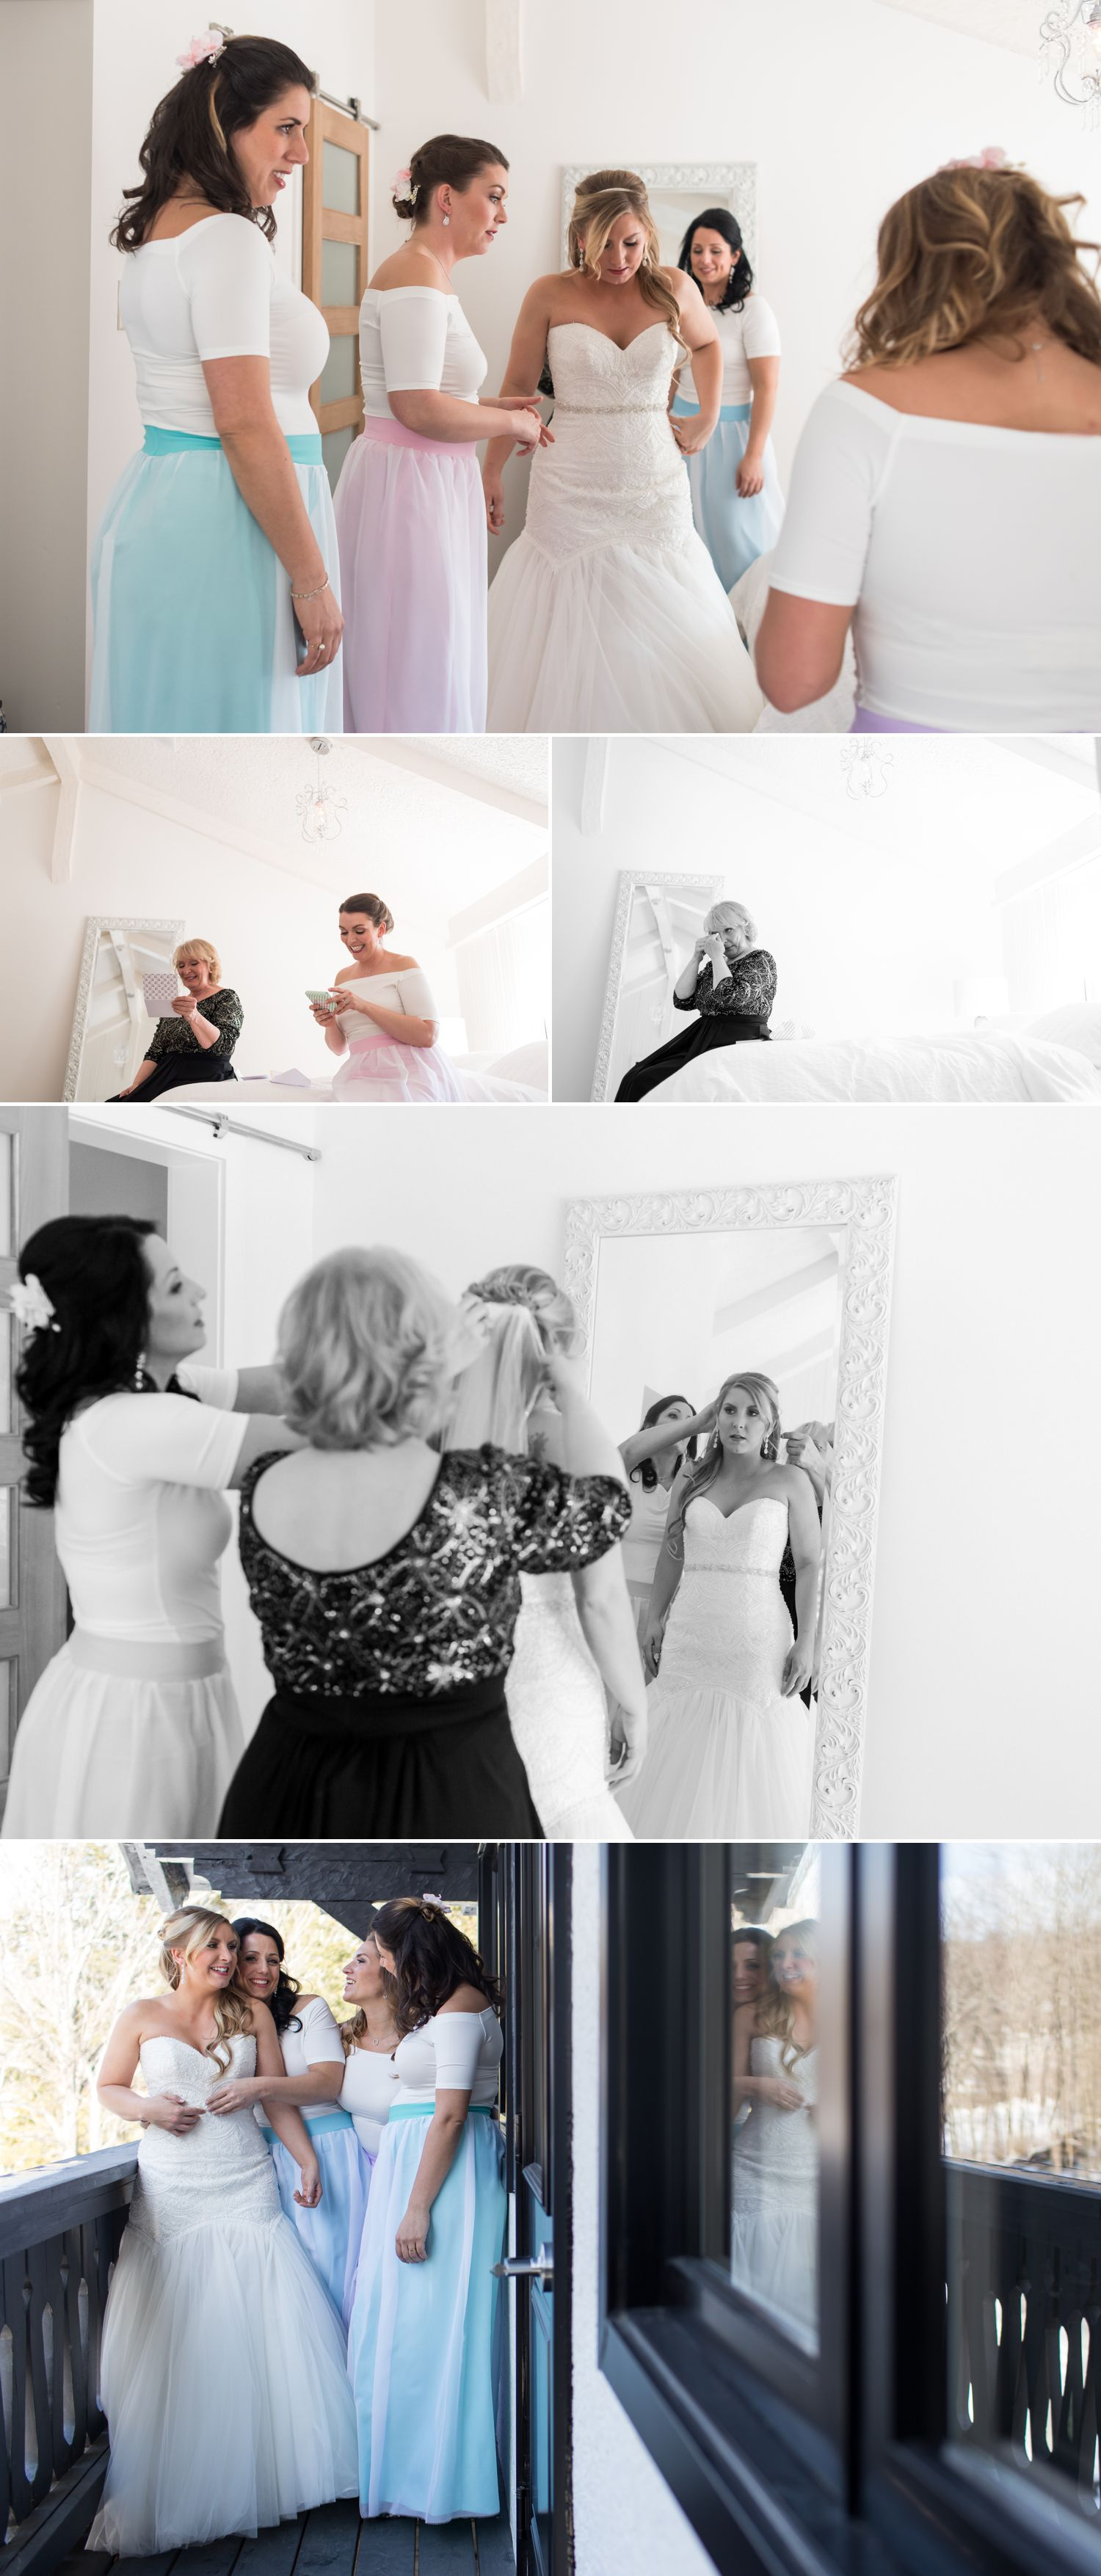 The bride with her mother and bridesmaids getting ready at Le Belvedere